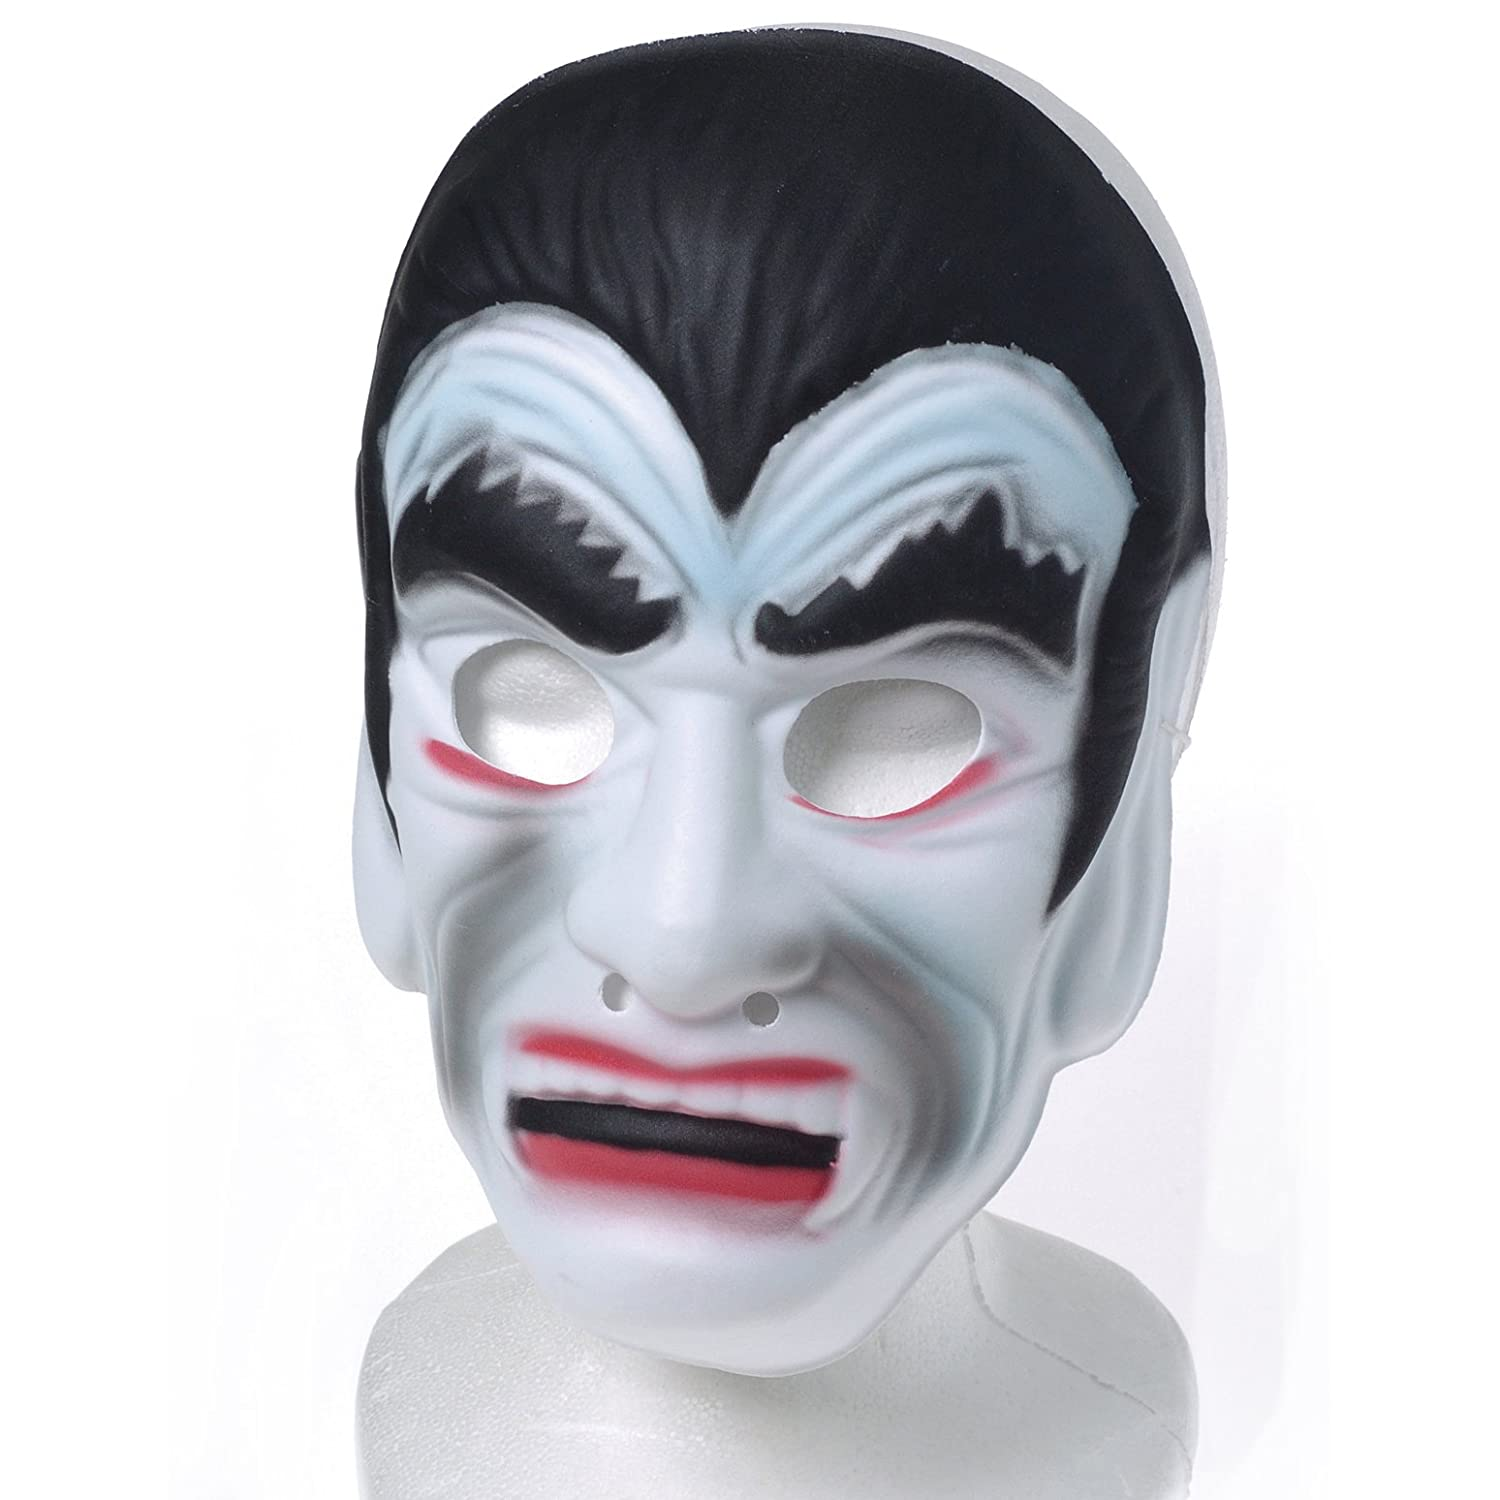 Child Size Foam Vampire Halloween Mask US Toy FA869